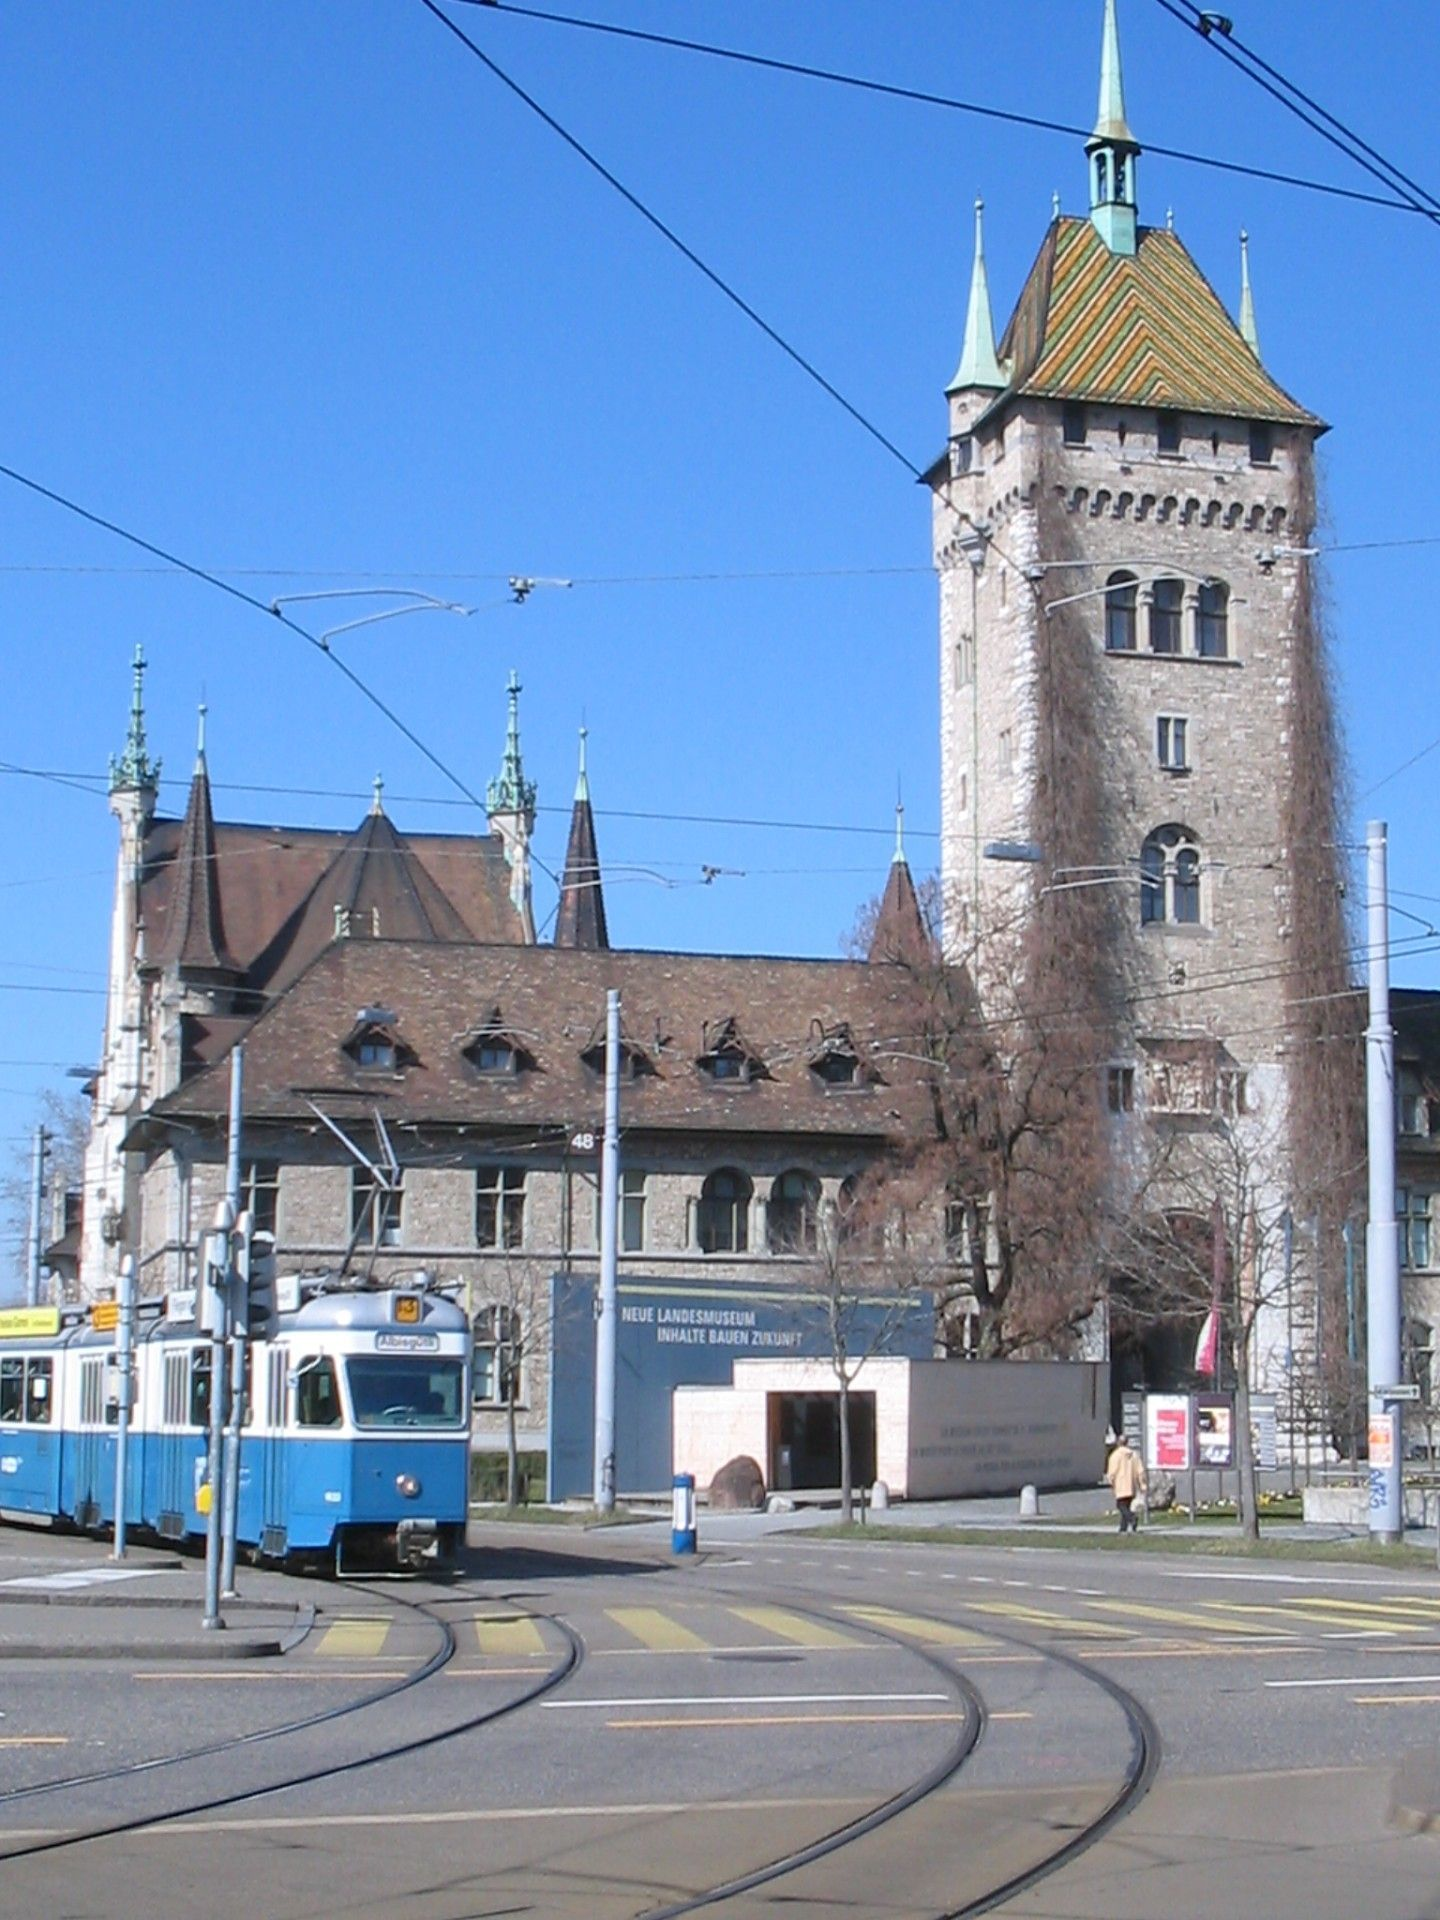 Swiss National Museum Front One Of The Public Transportation Zurich Switzerland Public Transport National Museum